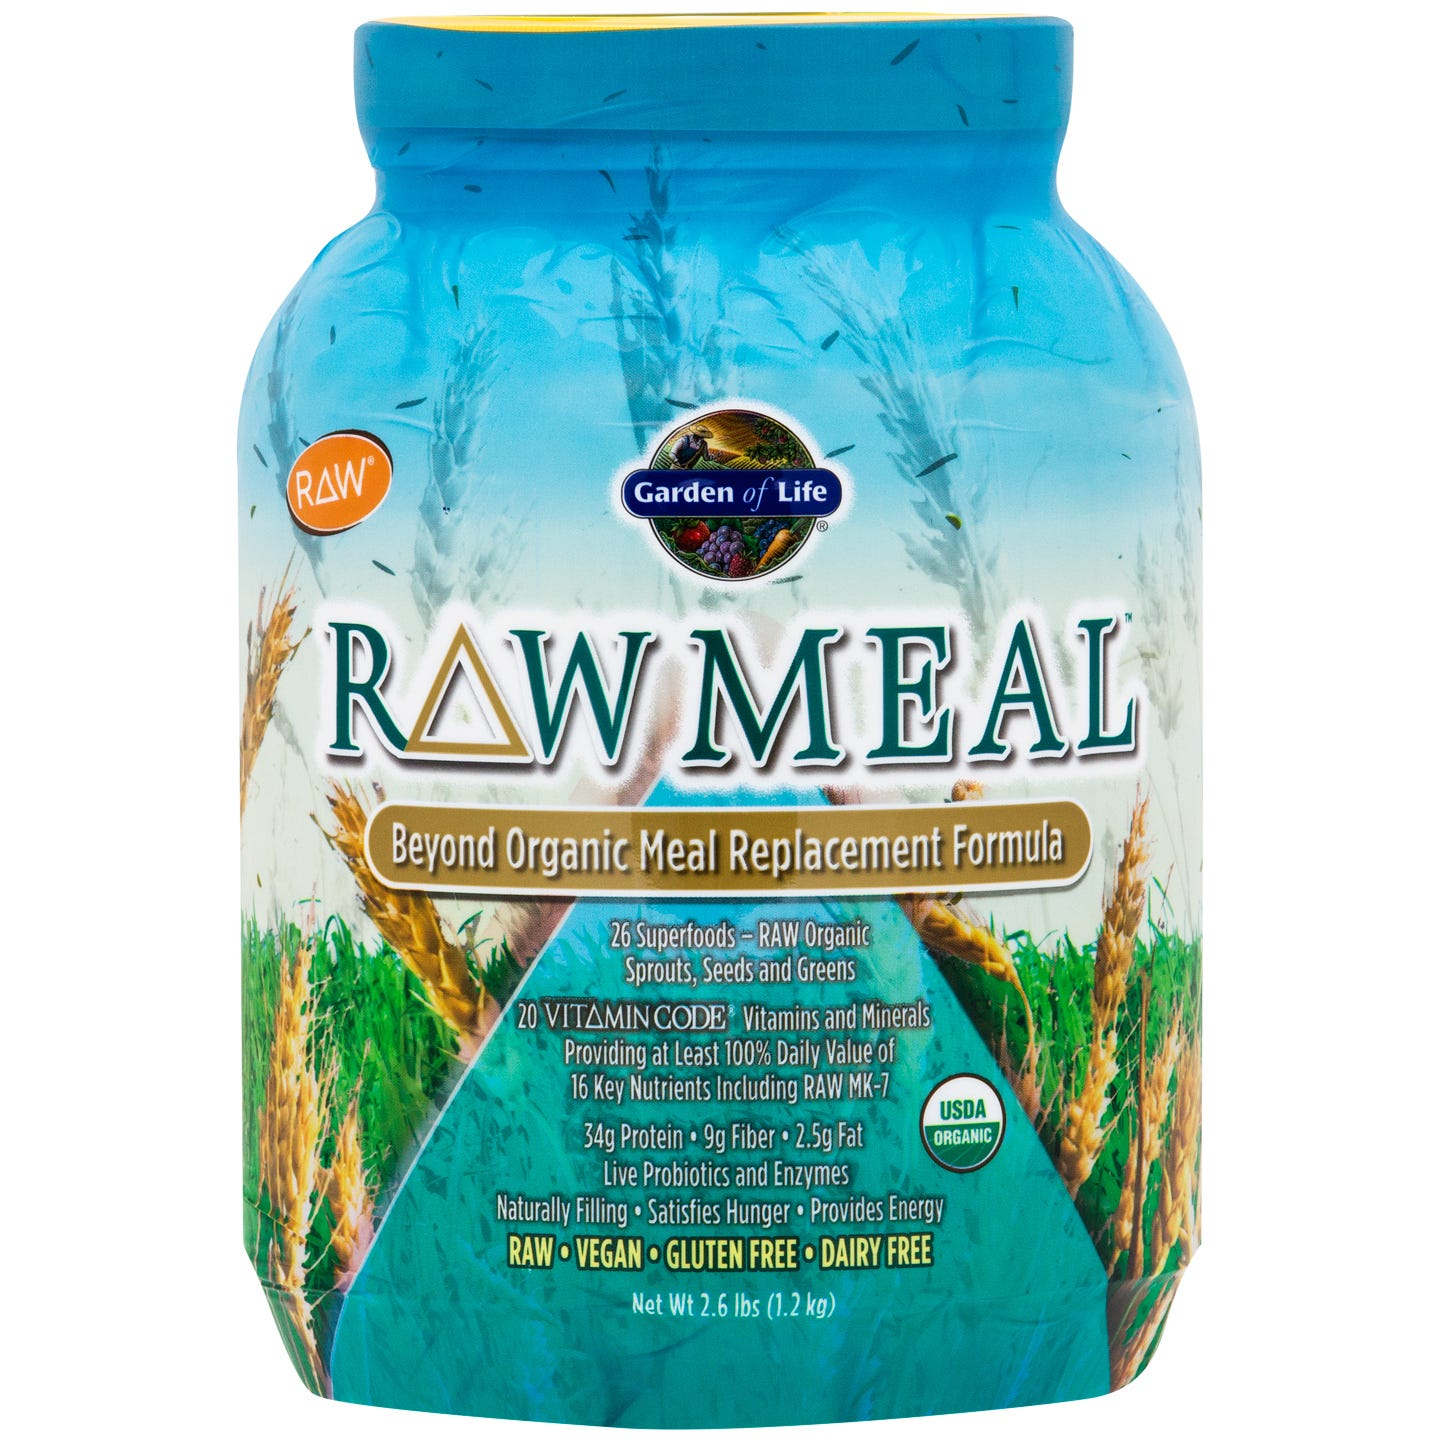 Organic RAW Meal Original 2.6 lb - Garden of Life - Rapid Diet Weight Loss Products Shop